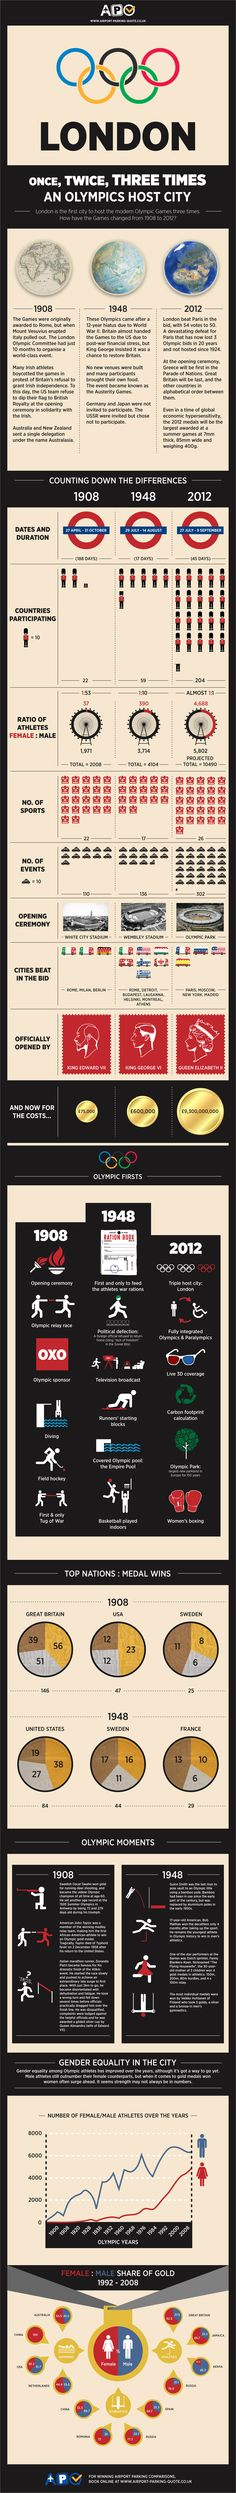 about London Olympics